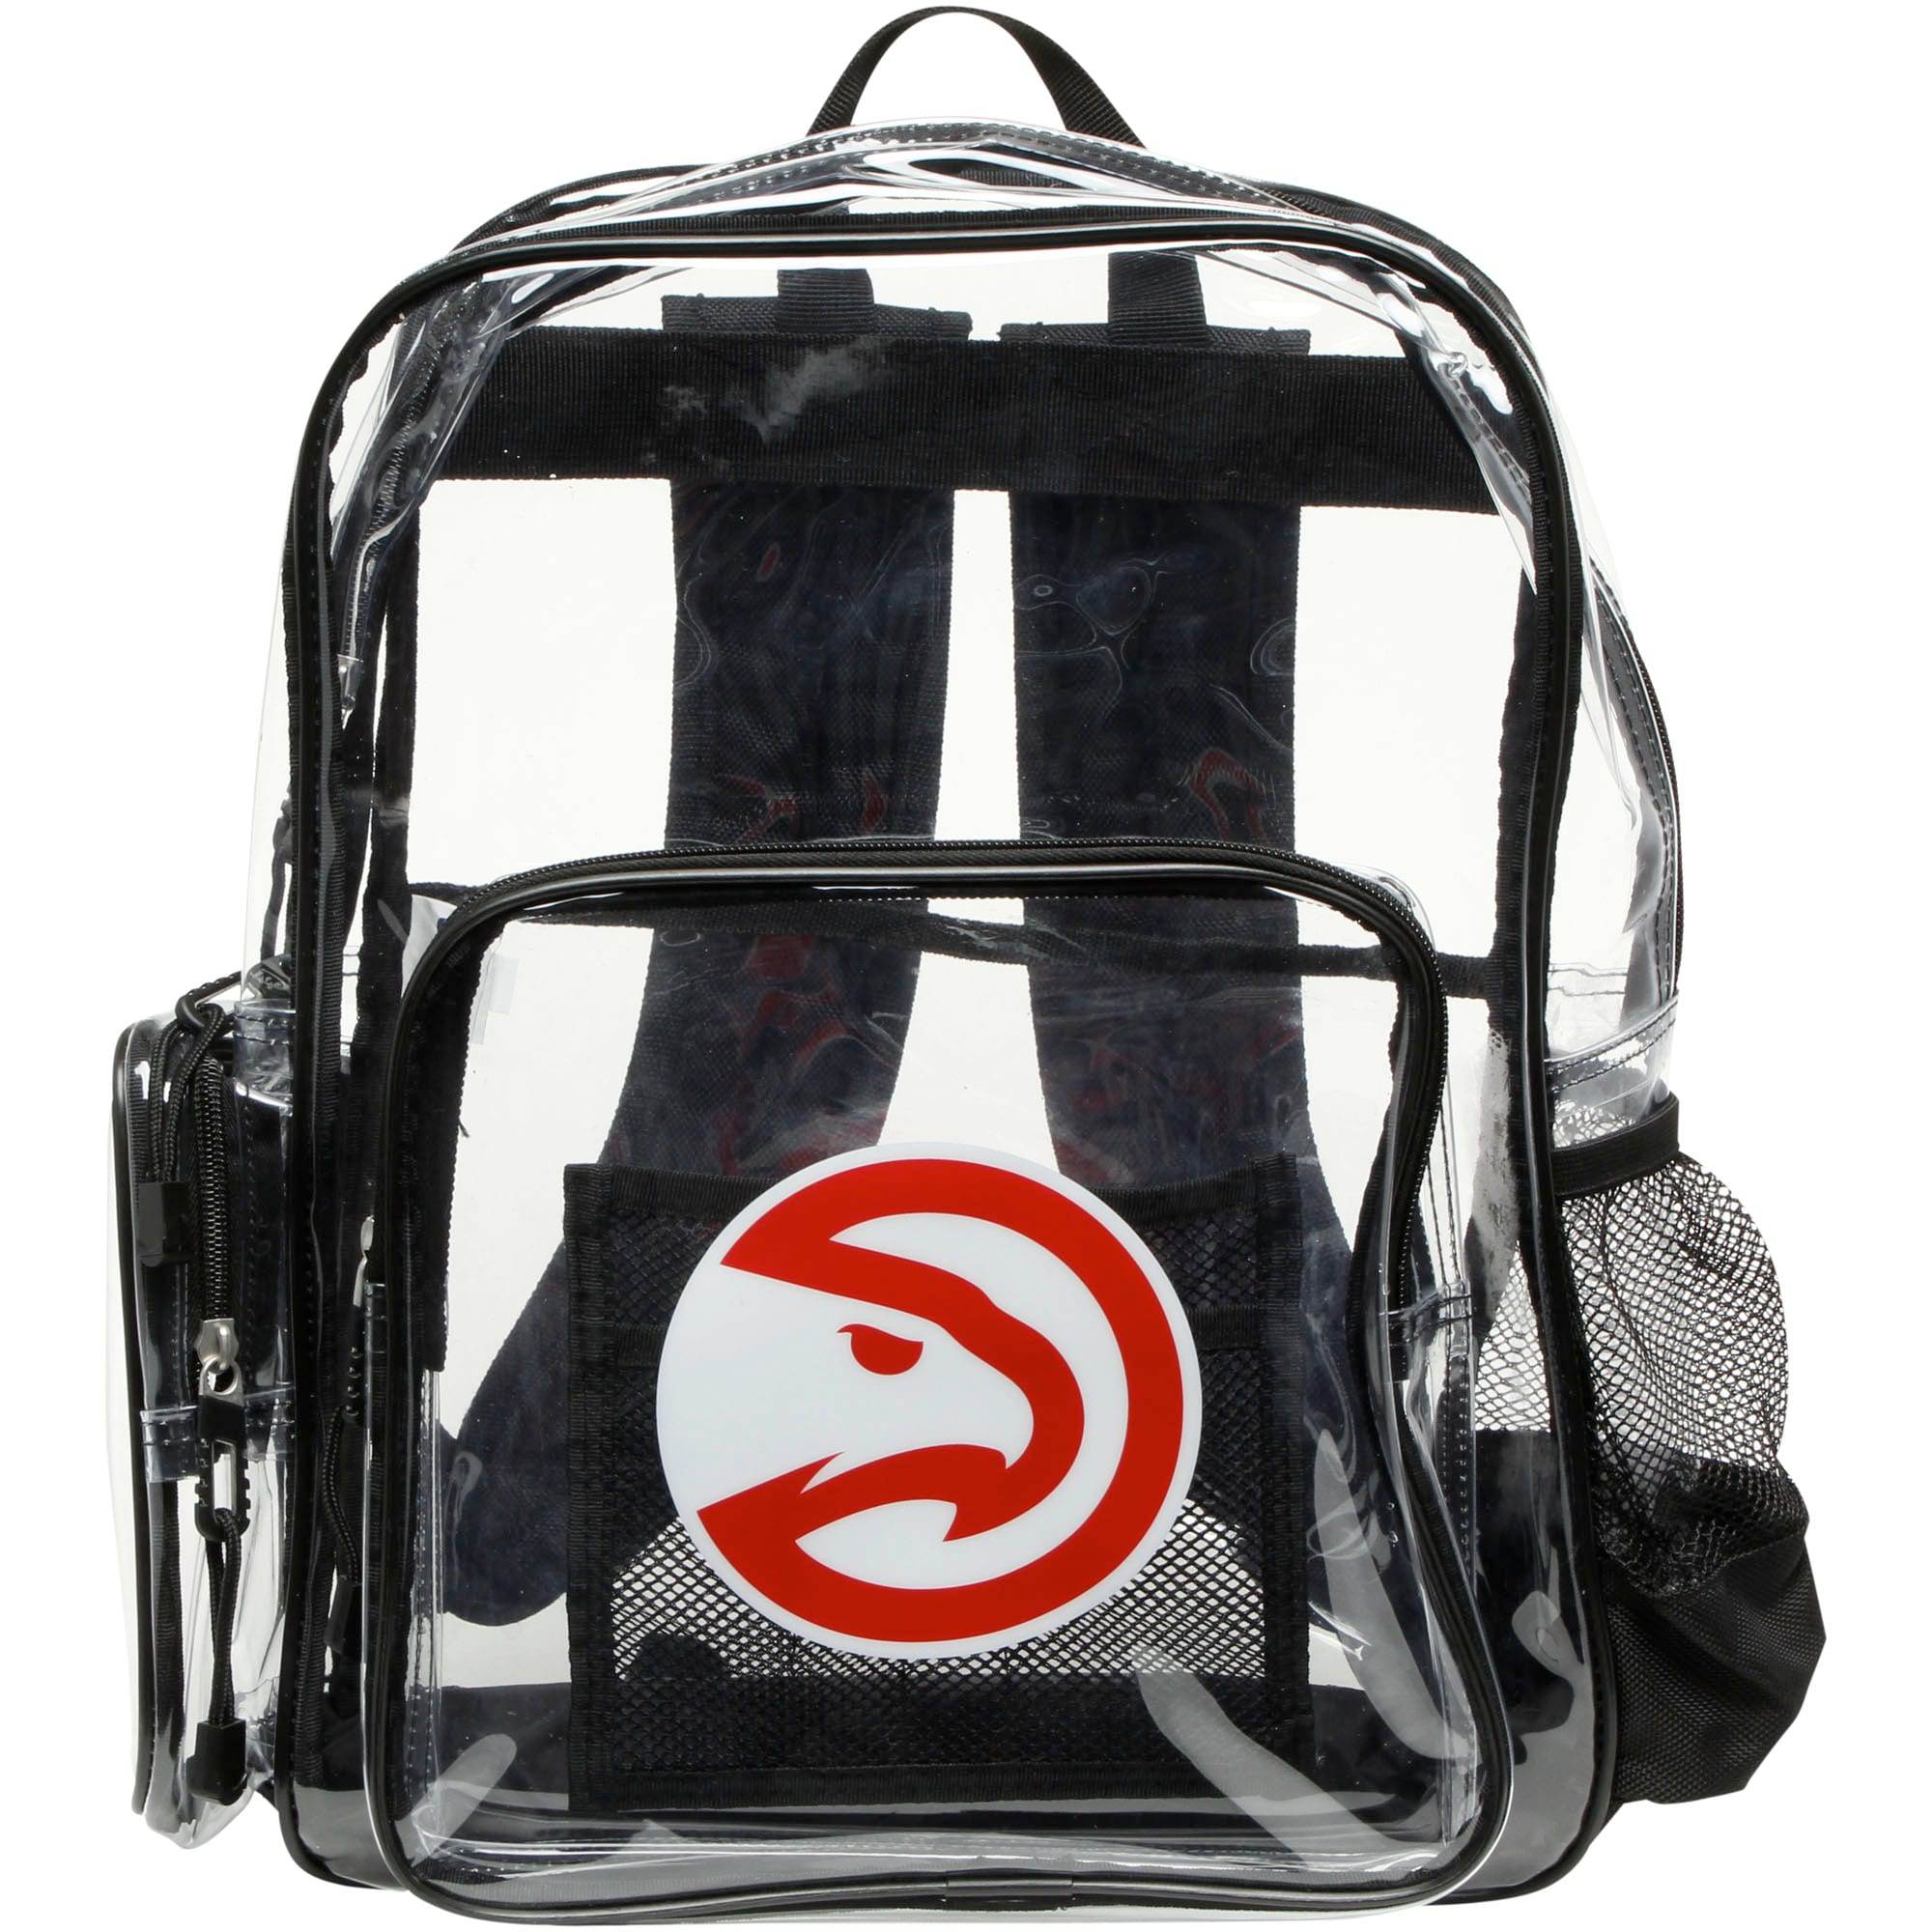 Atlanta Hawks The Northwest Company Dimension Clear Backpack